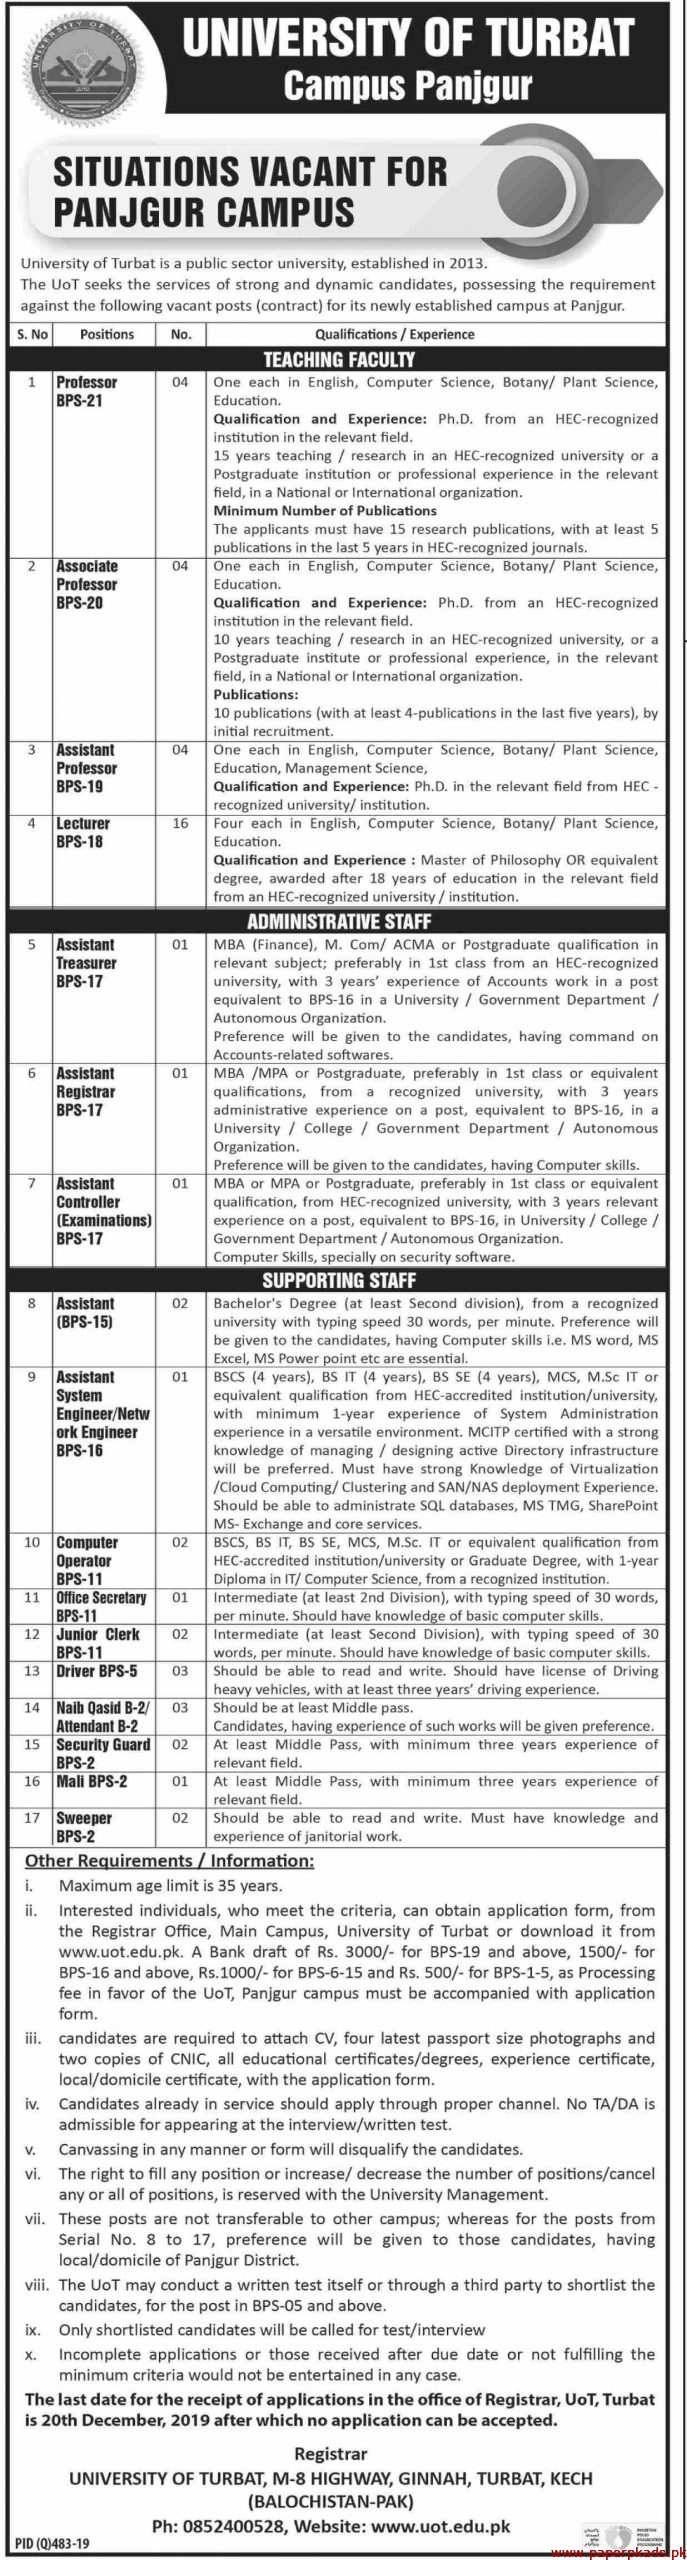 University of Turbat Jobs 2019 Latest